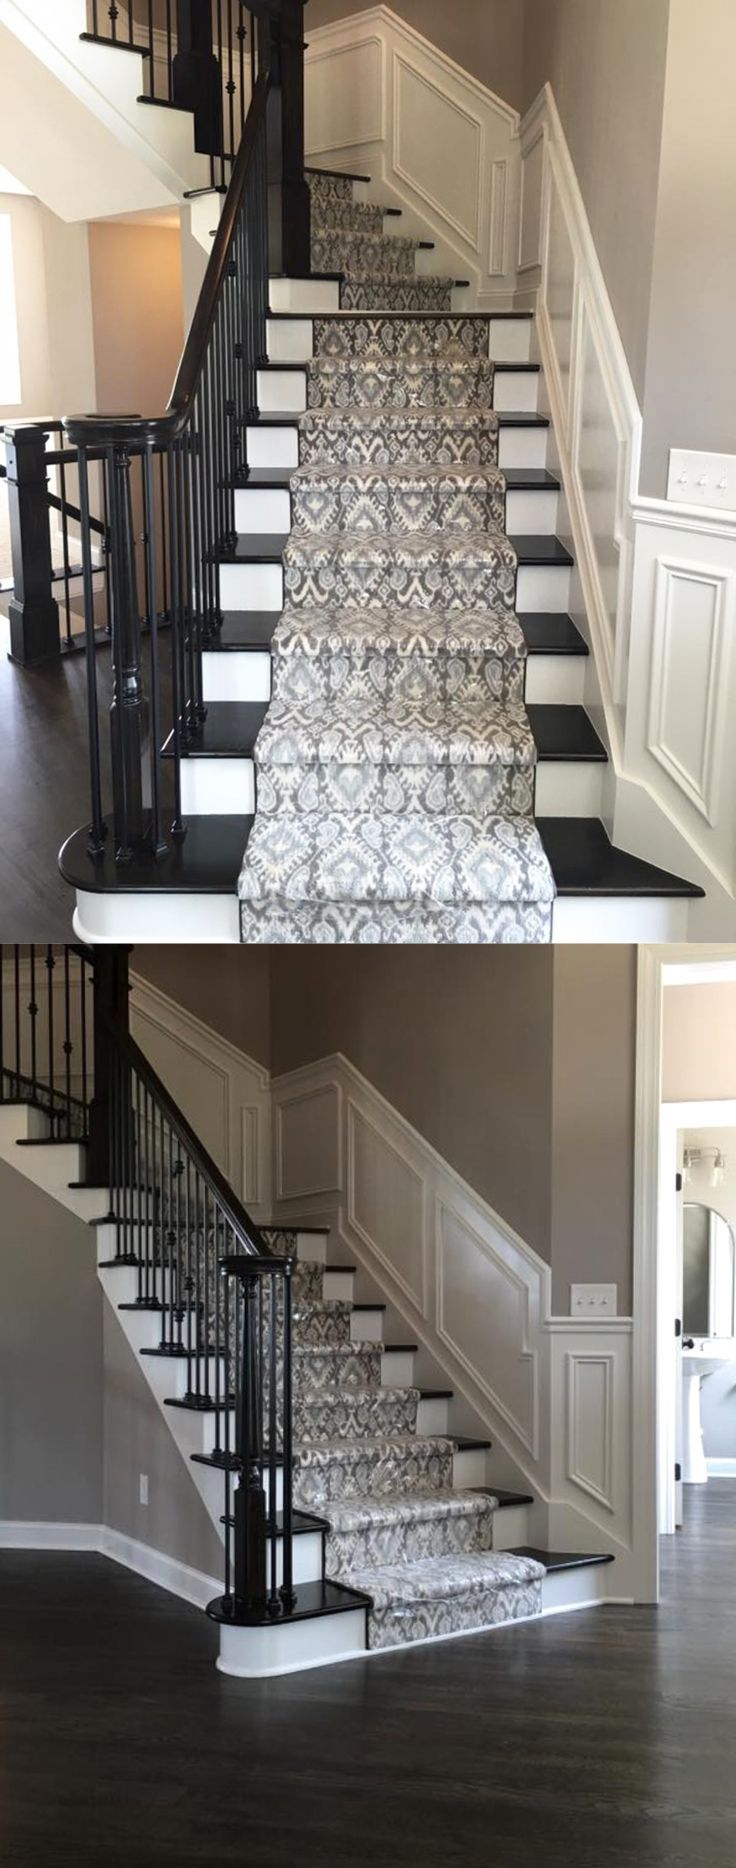 422 Best Stair Runners Images On Pinterest Sweet Home | Carpet Colors For Stairs